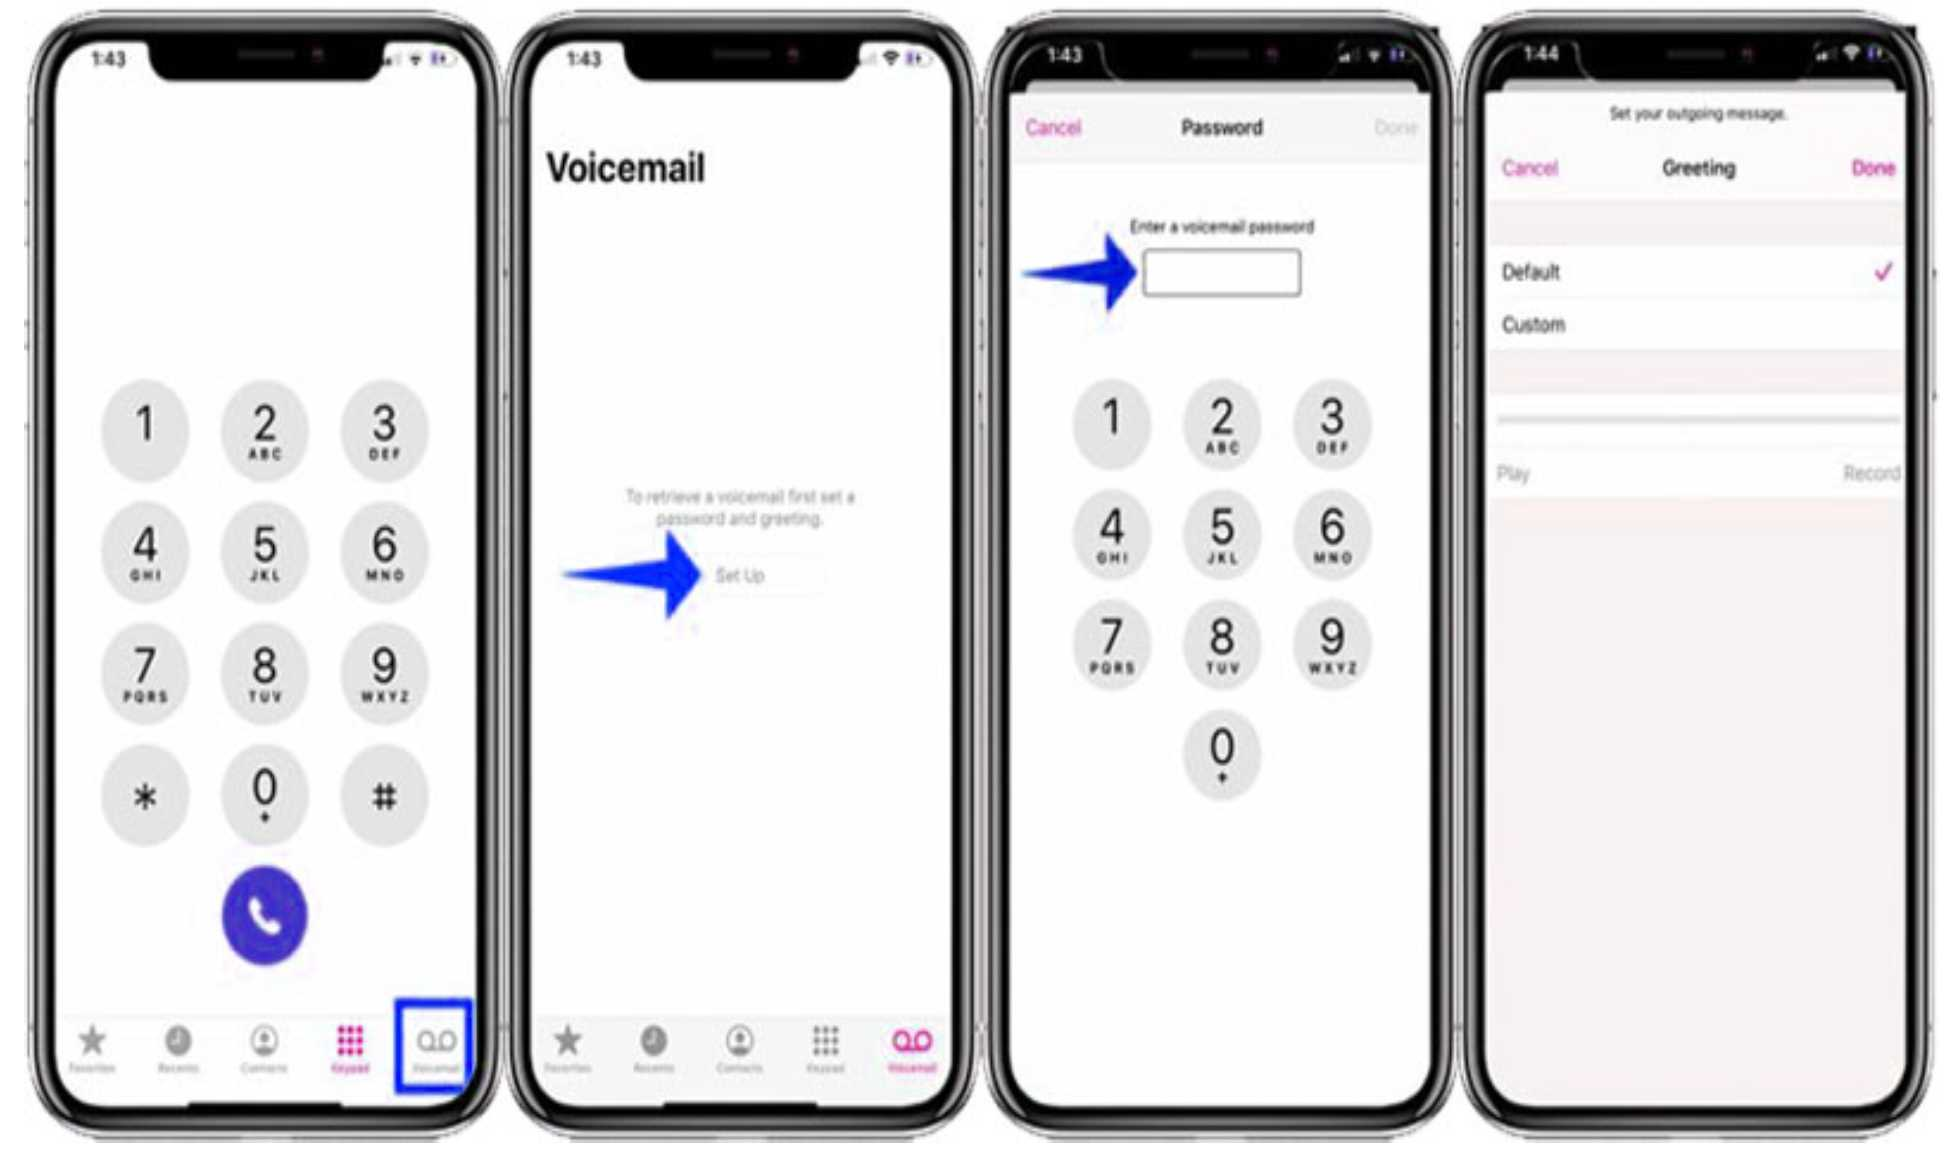 How to set up voicemail on iphone 11